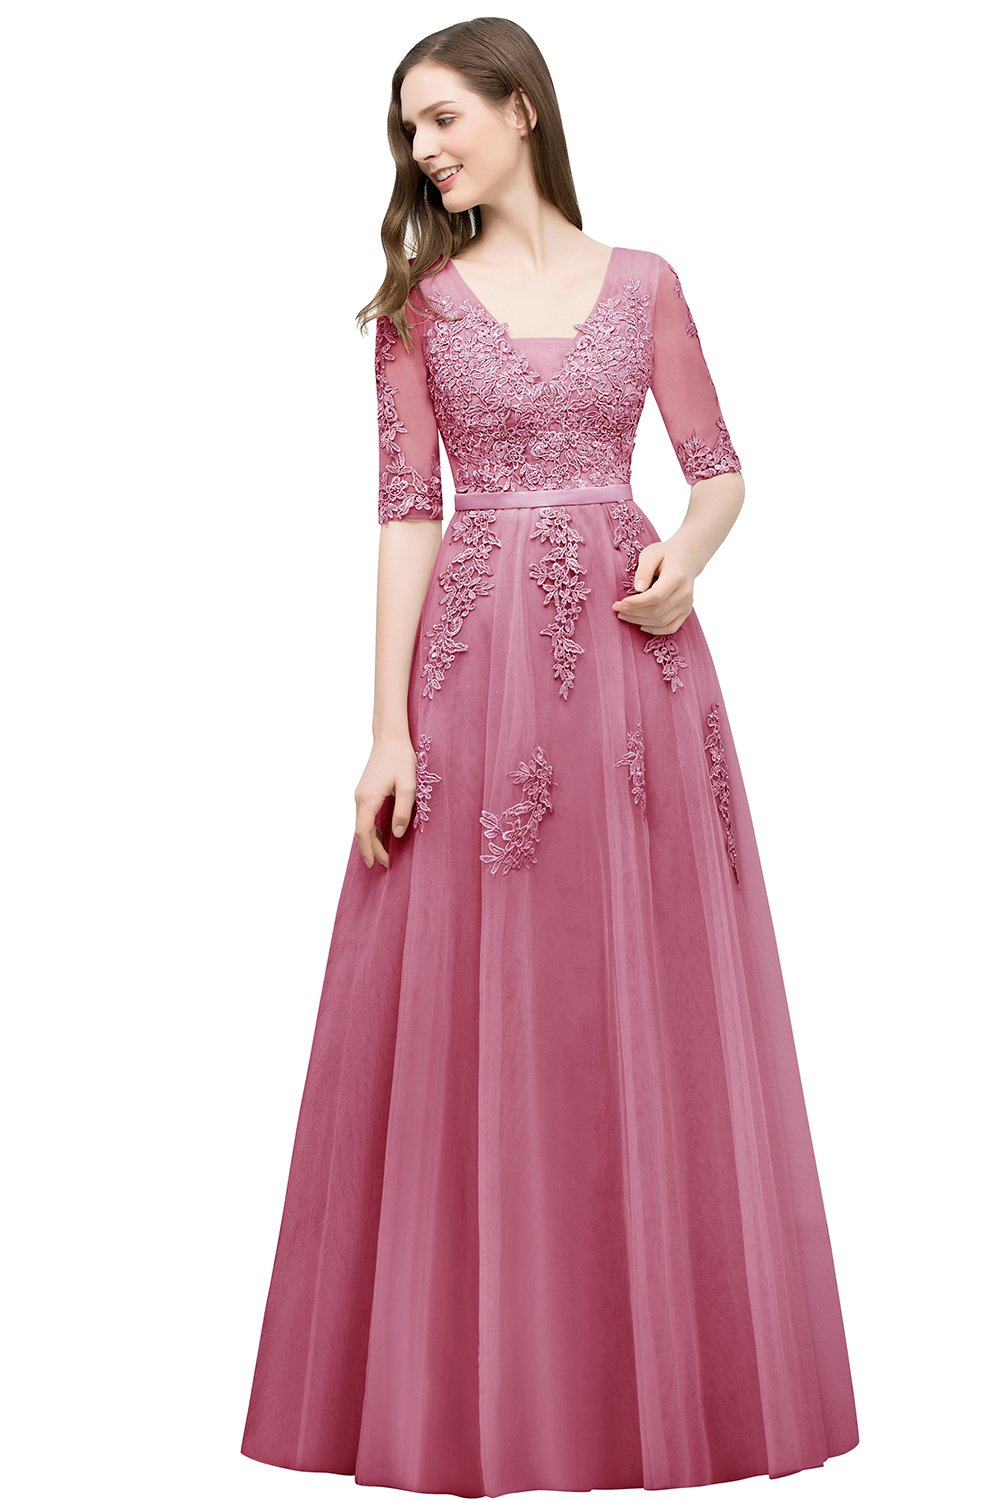 cb8f73ad5e6 MisShow 2018 Lace Applique Tulle Long Prom Dresses for Women Formal Dusty  Pink US4